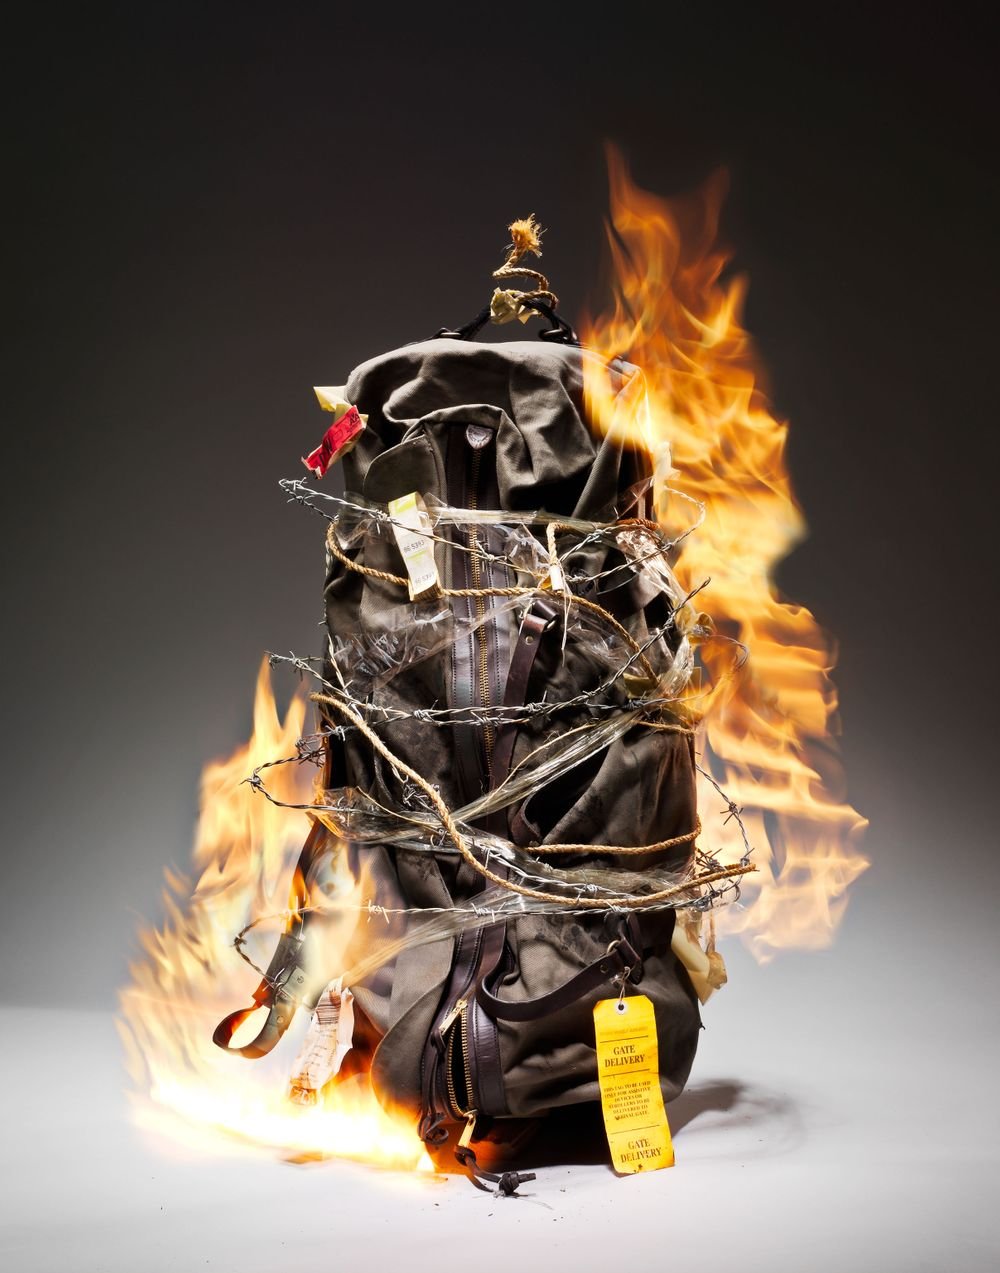 Fire in photography